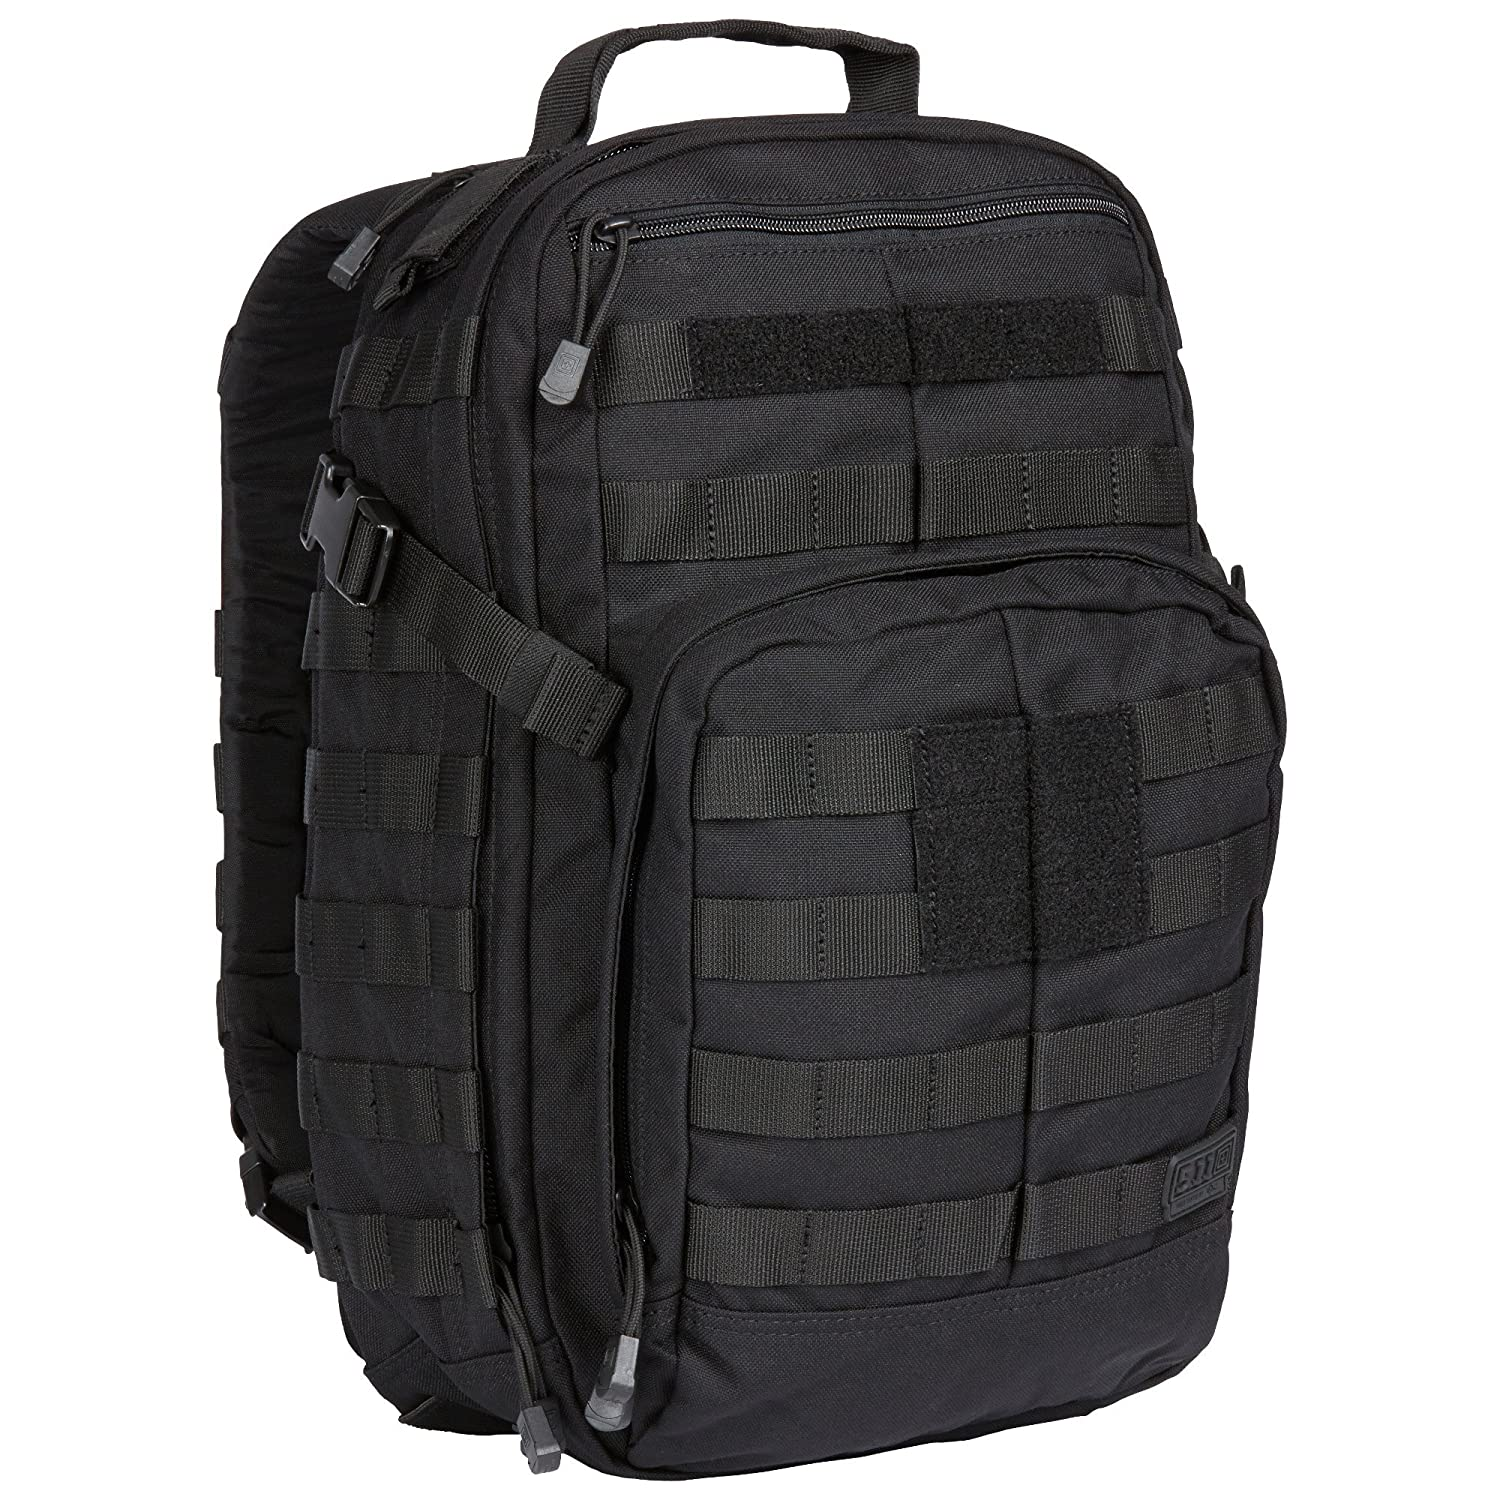 5.11 Rush12 Tactical Backpack For Military, Bug Out Bag, Small, Style 56892 by 5.11